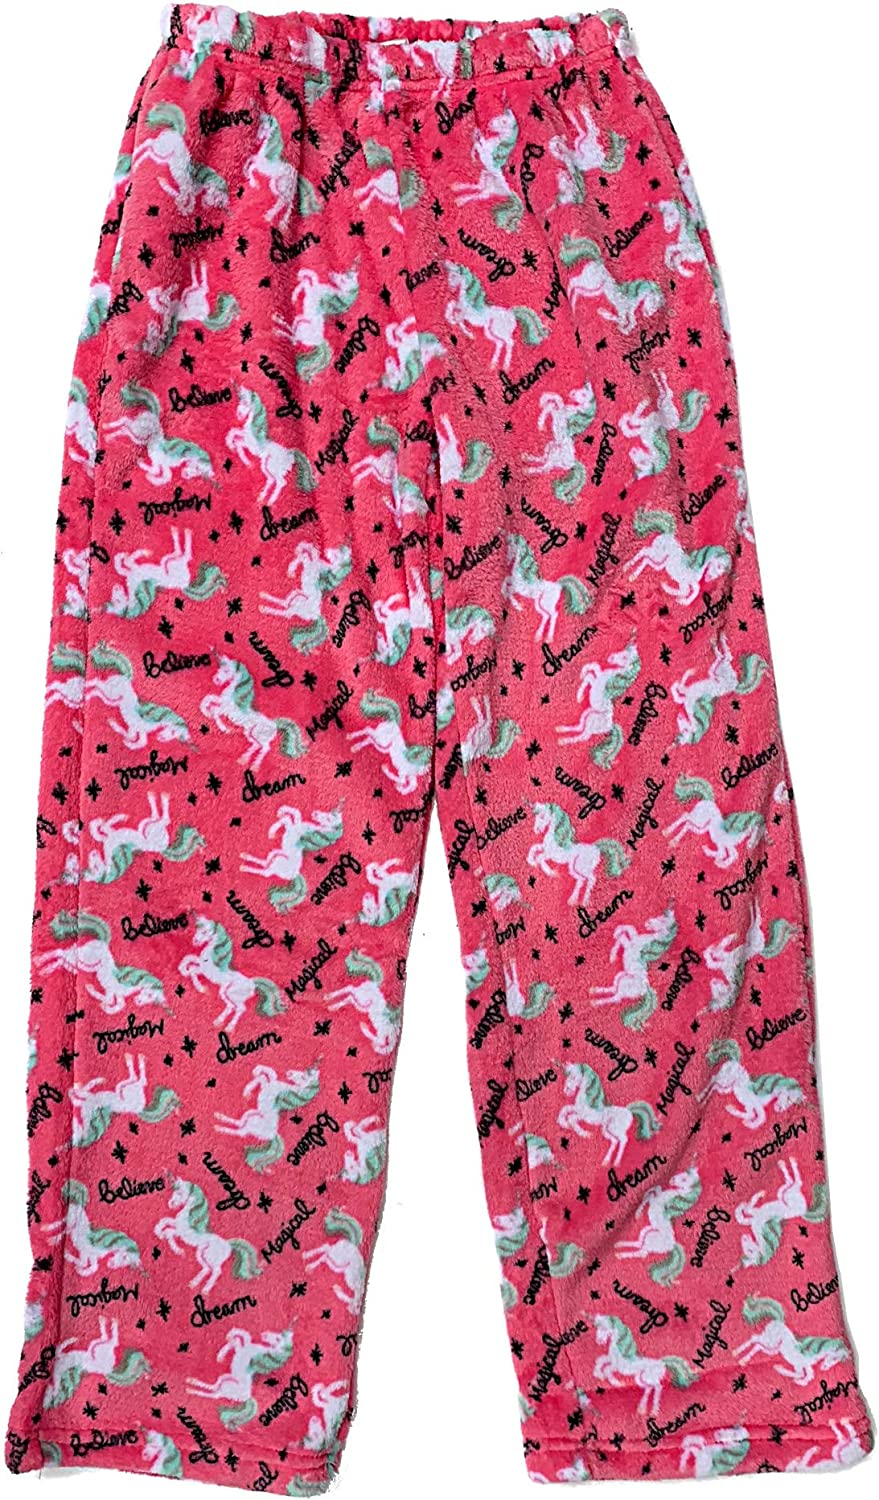 Popular Girls Fuzzy Fleece Pajama Pants